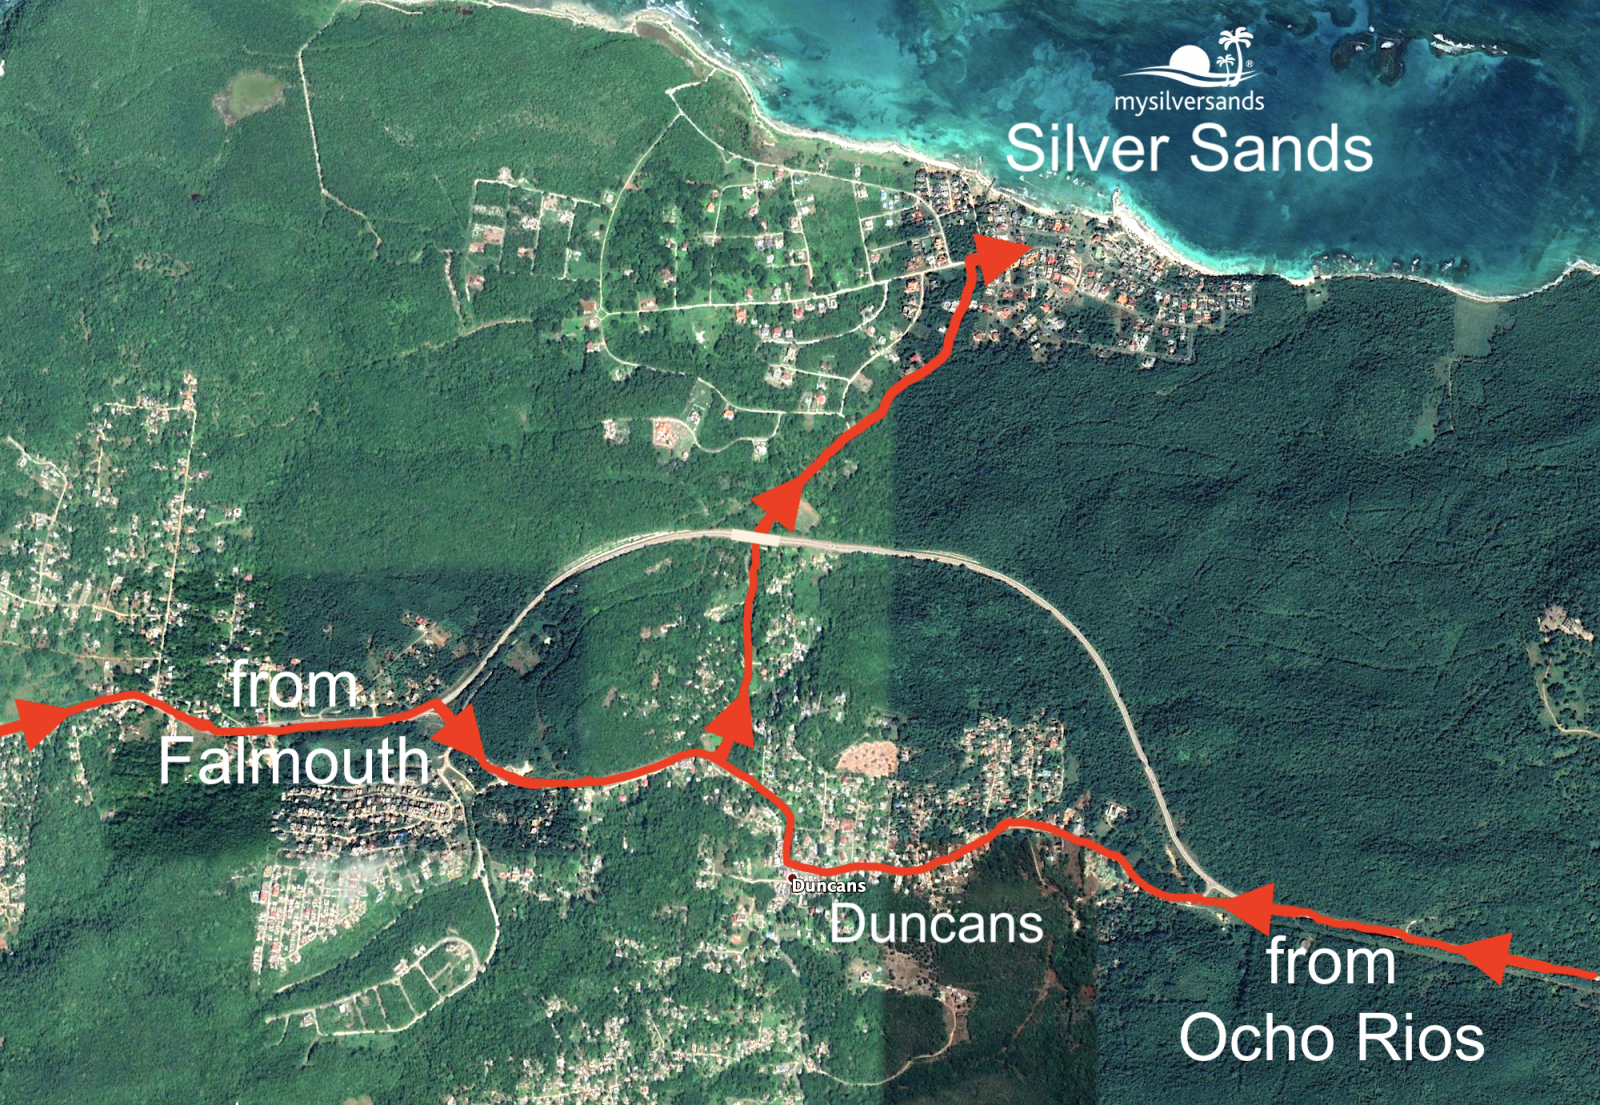 Map showing location of Silver Sands